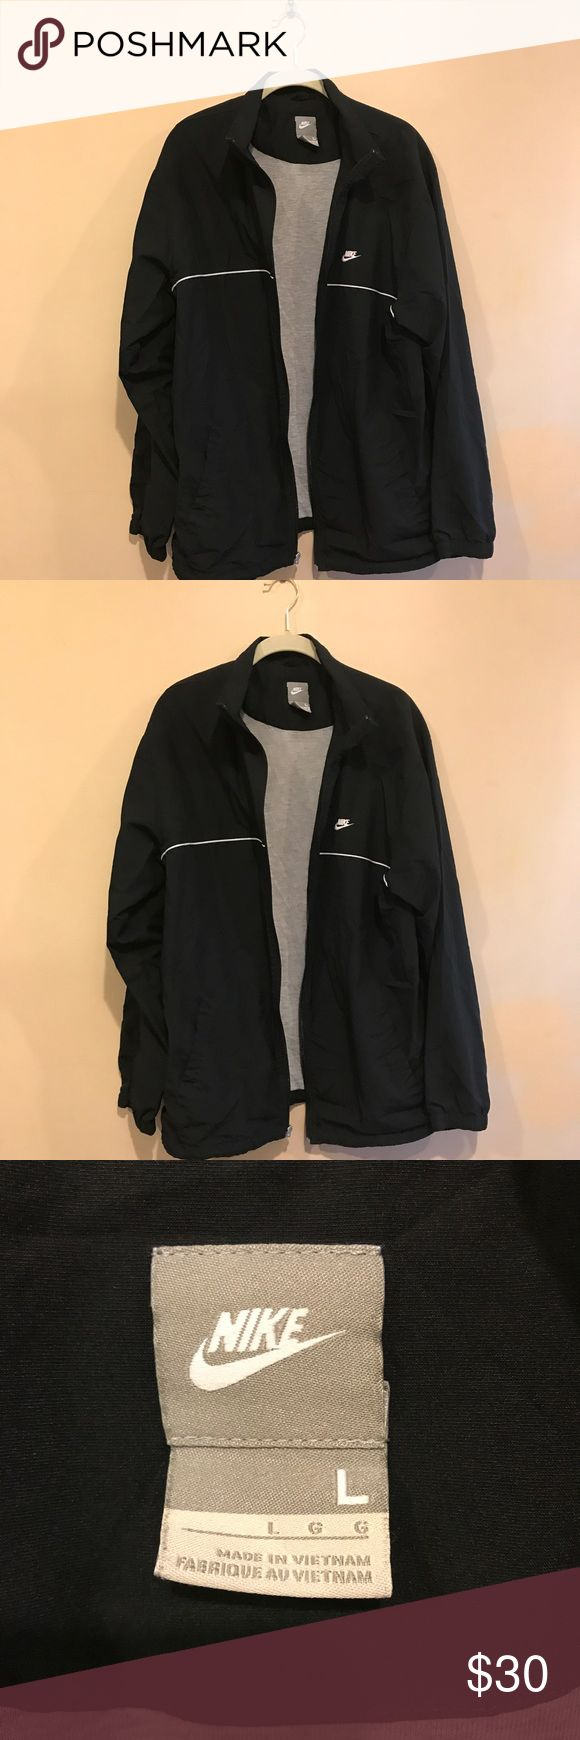 Nike Men's Black Sport Jacket sz L Nike Men's Sport Jacket. Only flaw is zipper puller is missing.  Fantastic jacket. In great shape no tears or holes.  Lined interior with a jersey material. Approximate Measurements Length 30 in.  Pit to pit 20.5 in. Nike Jackets & Coats Performance Jackets